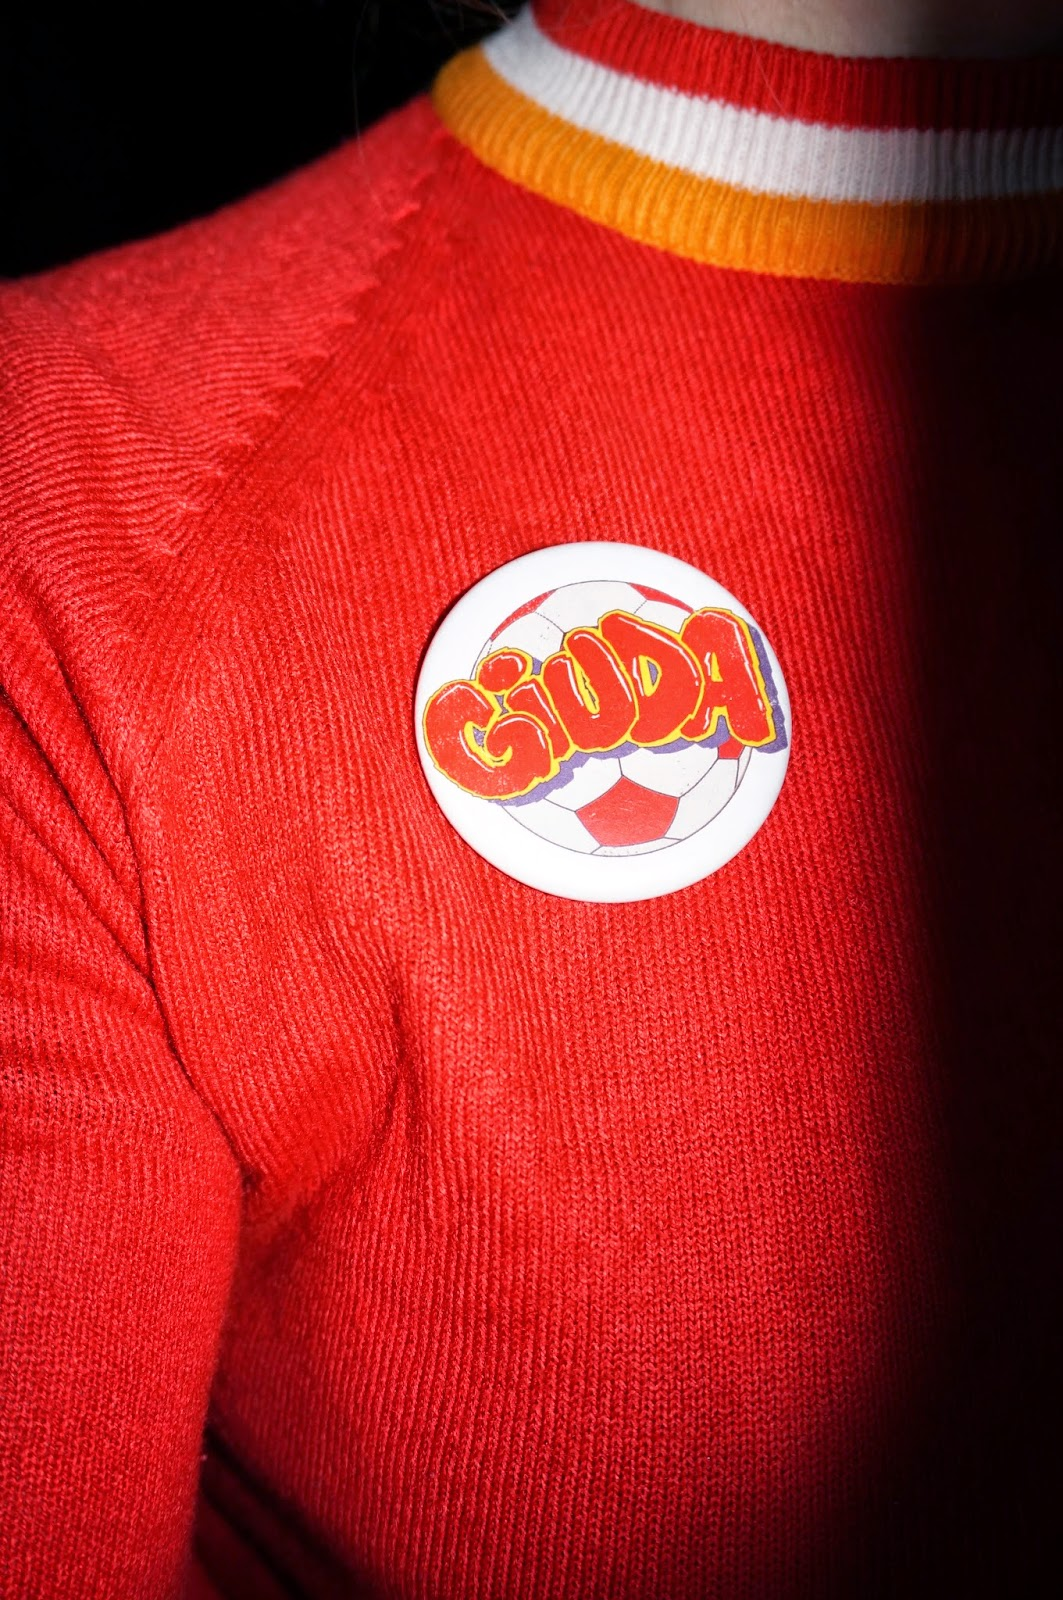 giuda horde badge pin pinback button i m a giuda fan giuda we love you let s do it again racey roller wild tiger woman